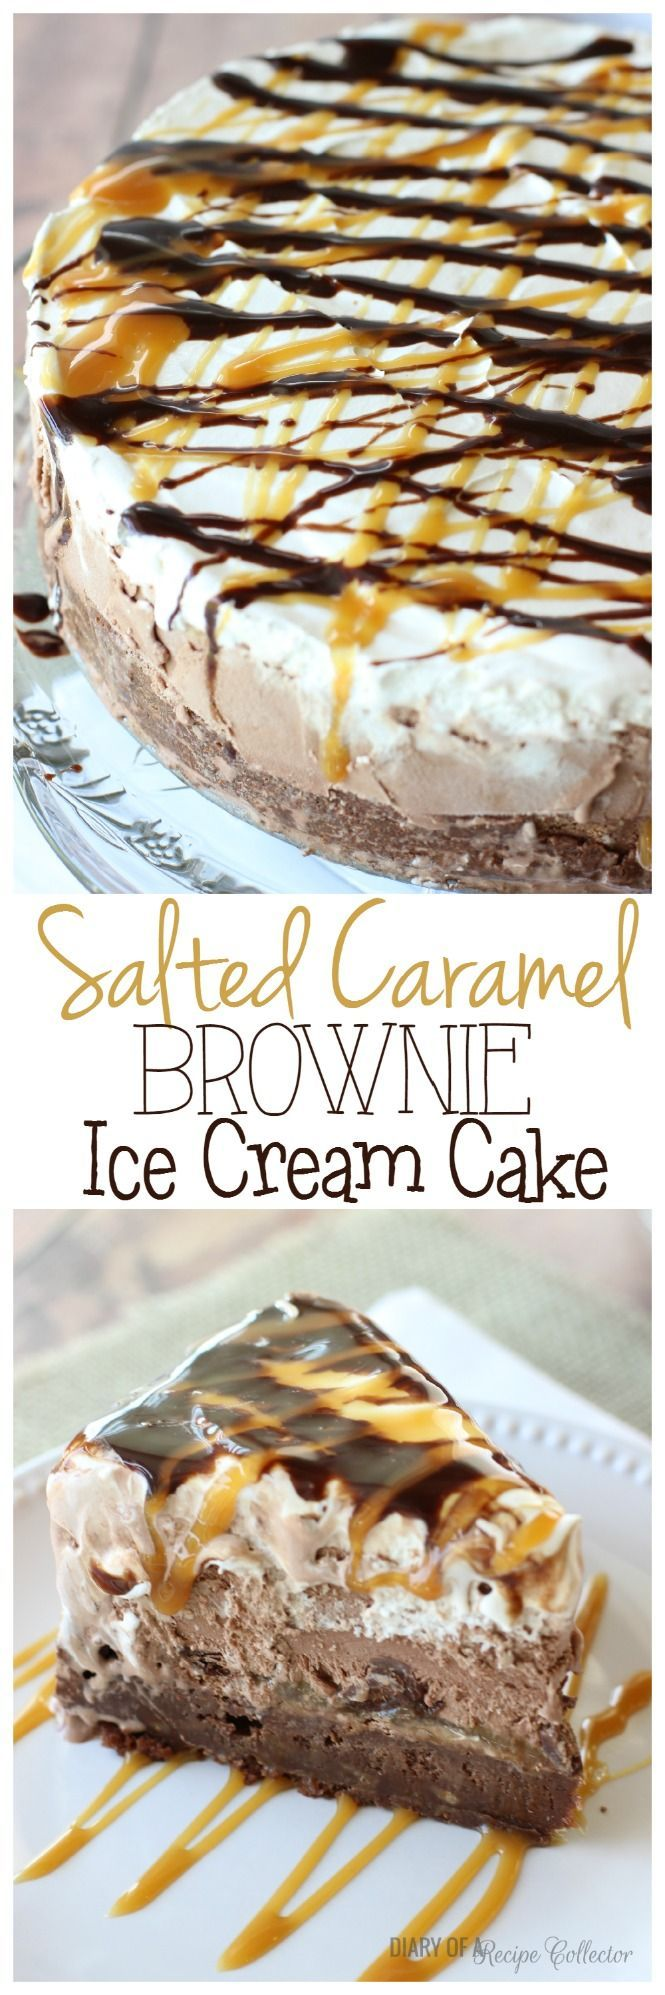 Salted Caramel Brownie Ice Cream Cake - Layers of rich brownie filled with toffee, salted caramel, dark chocolate truffles, chocolate ice cream, and whipped cream topped with drizzles of chocolate syrup and more salted caramel.